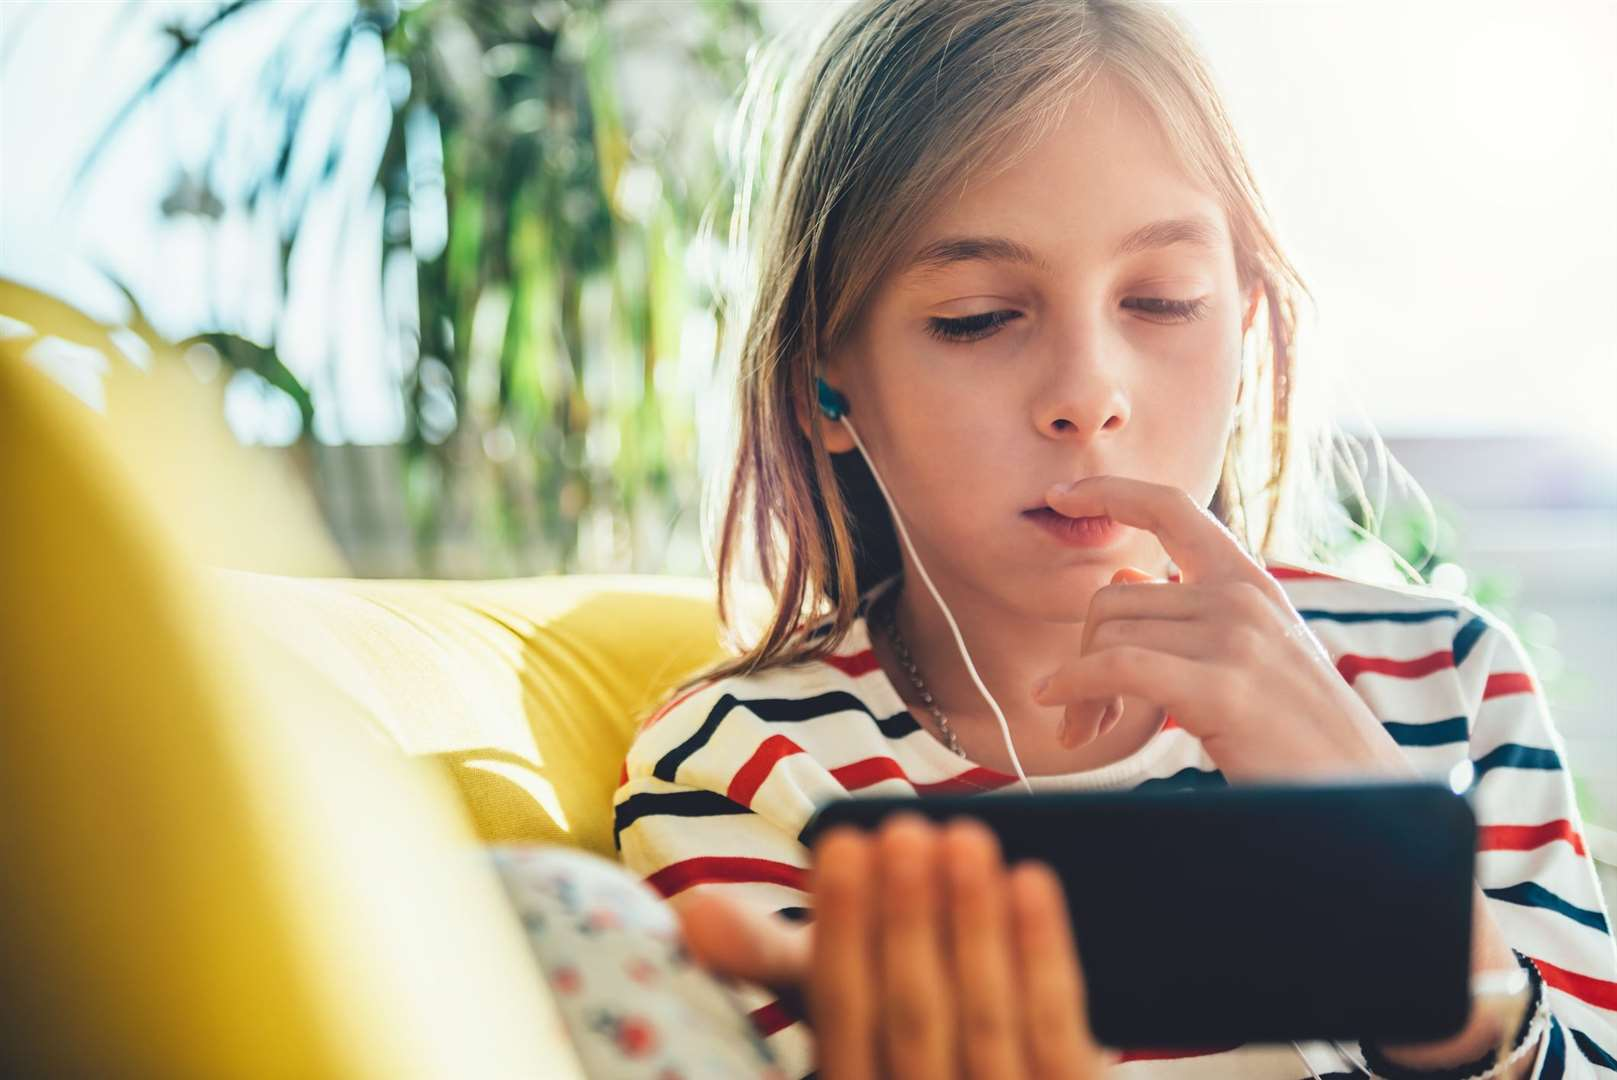 When should a child be given their first phone?